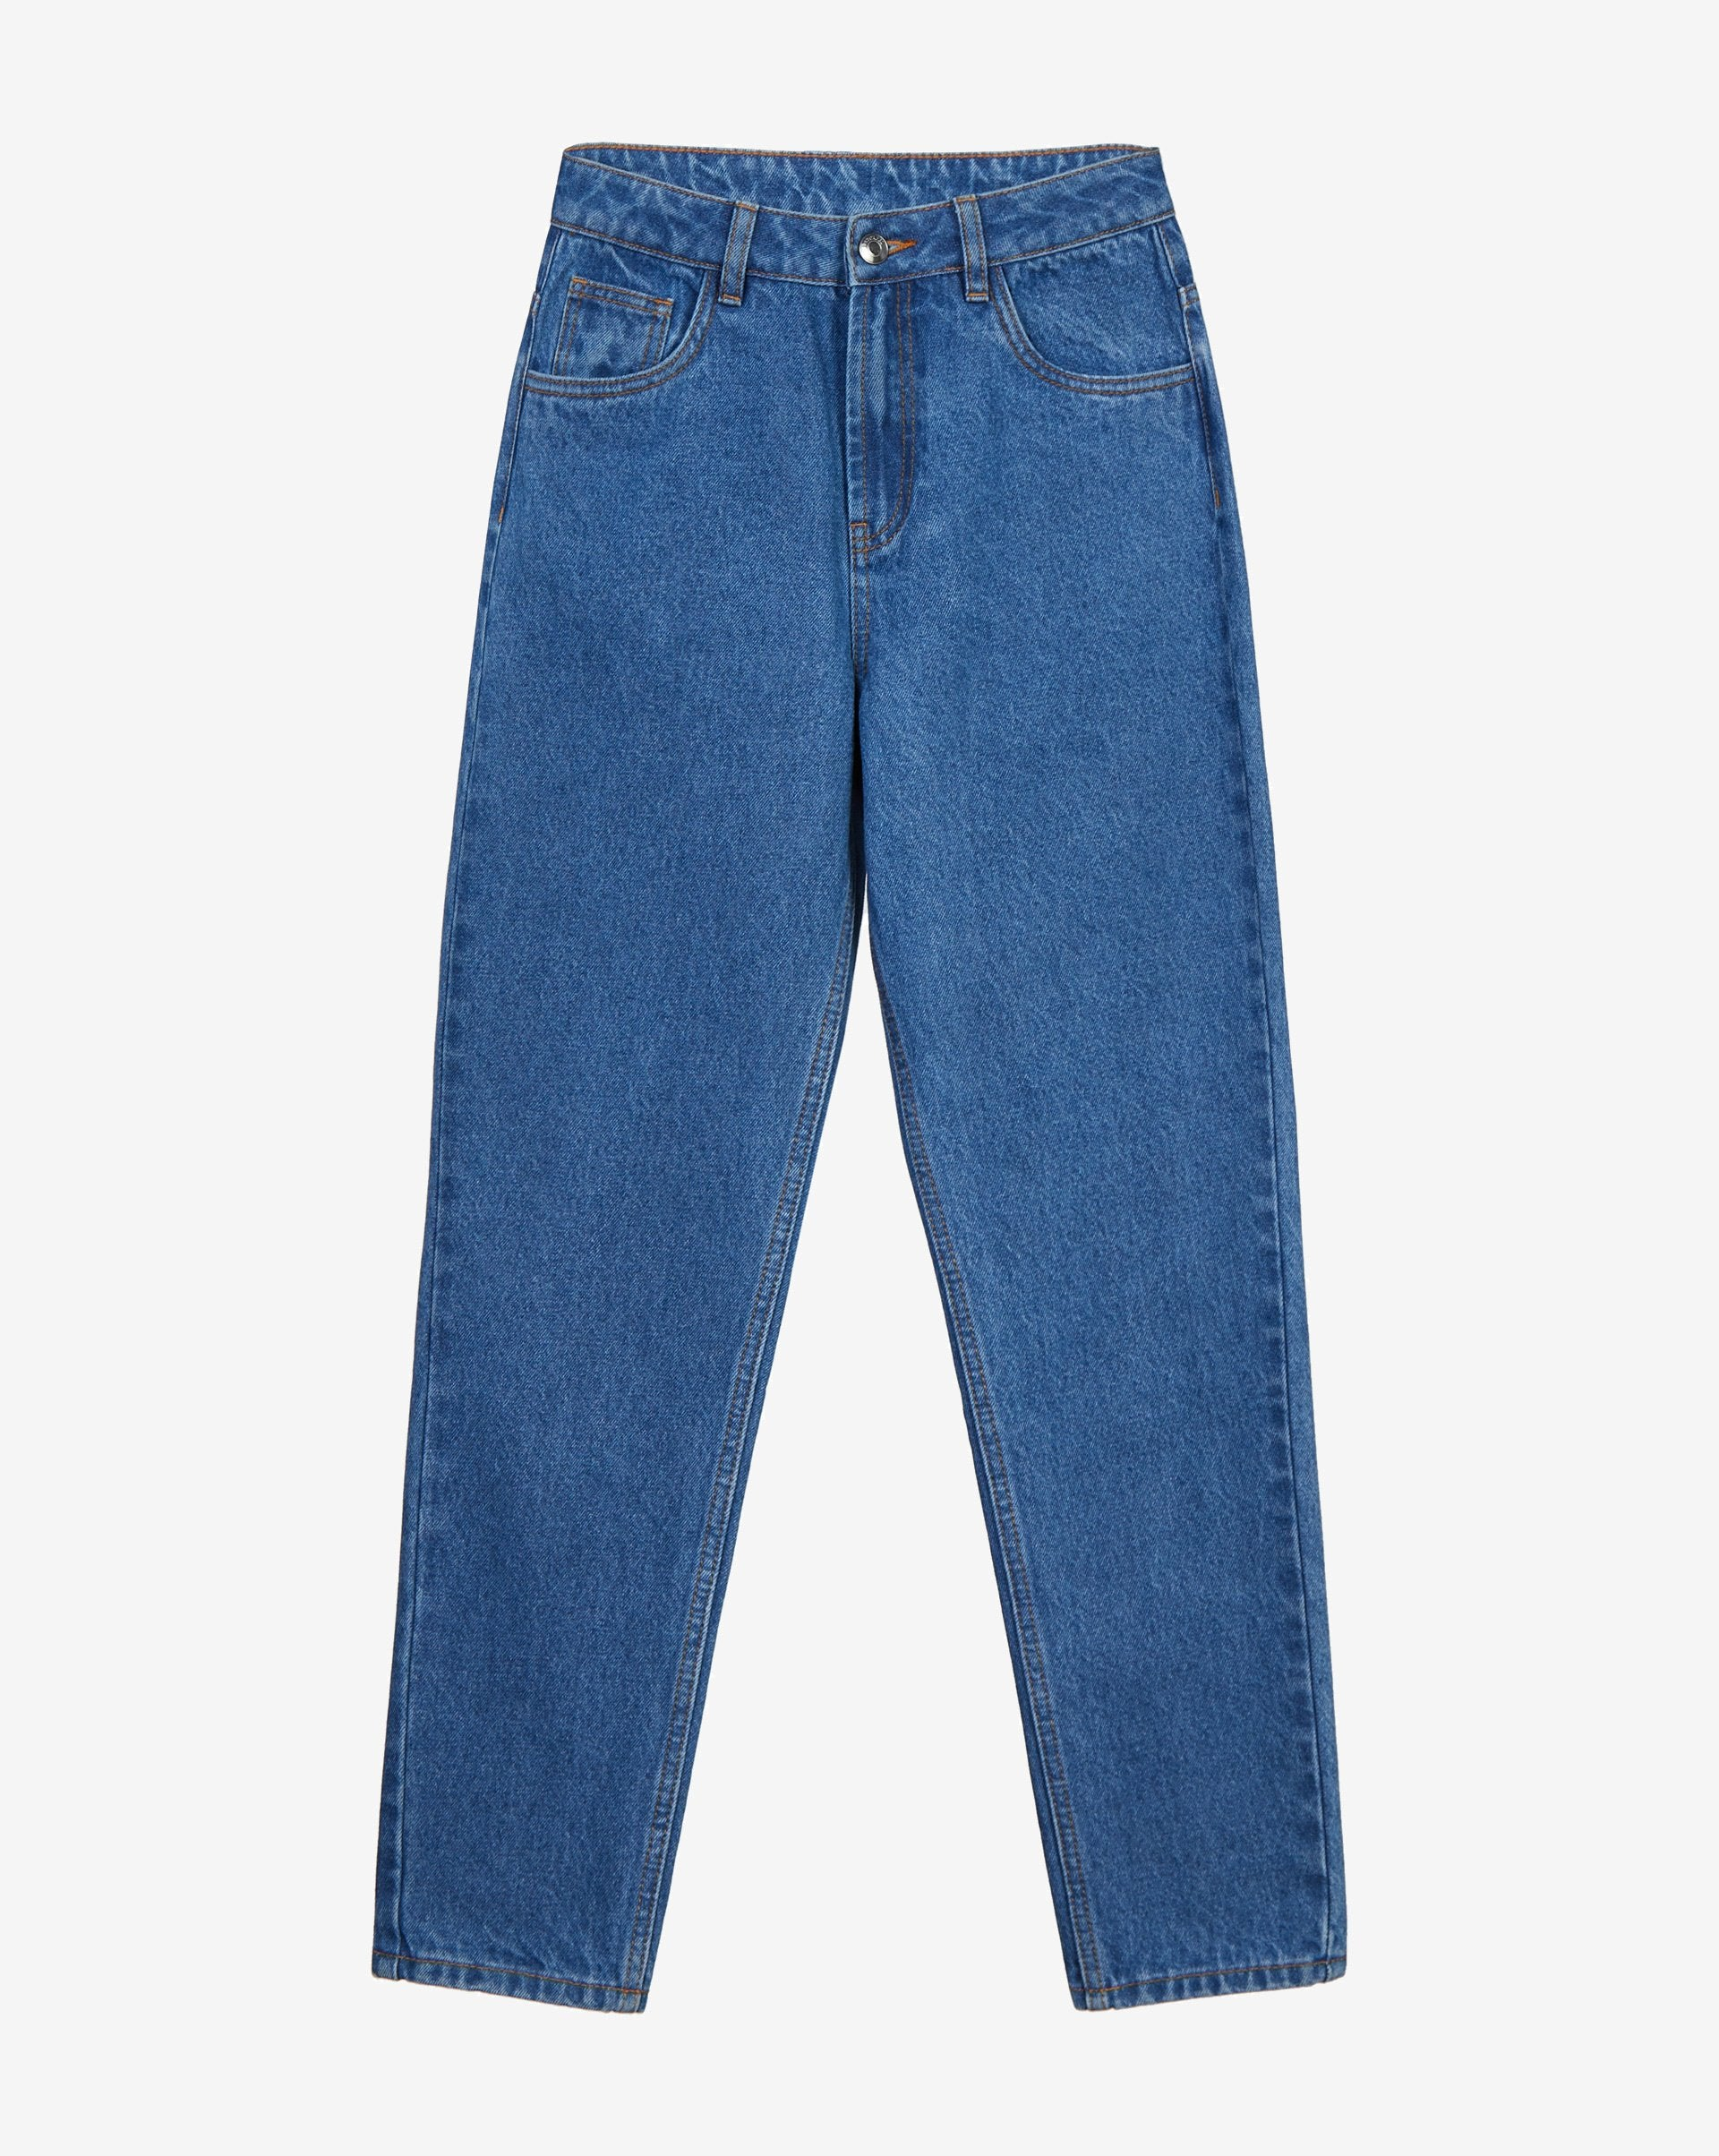 Cropped high rise jeans - 12 STOREEZ